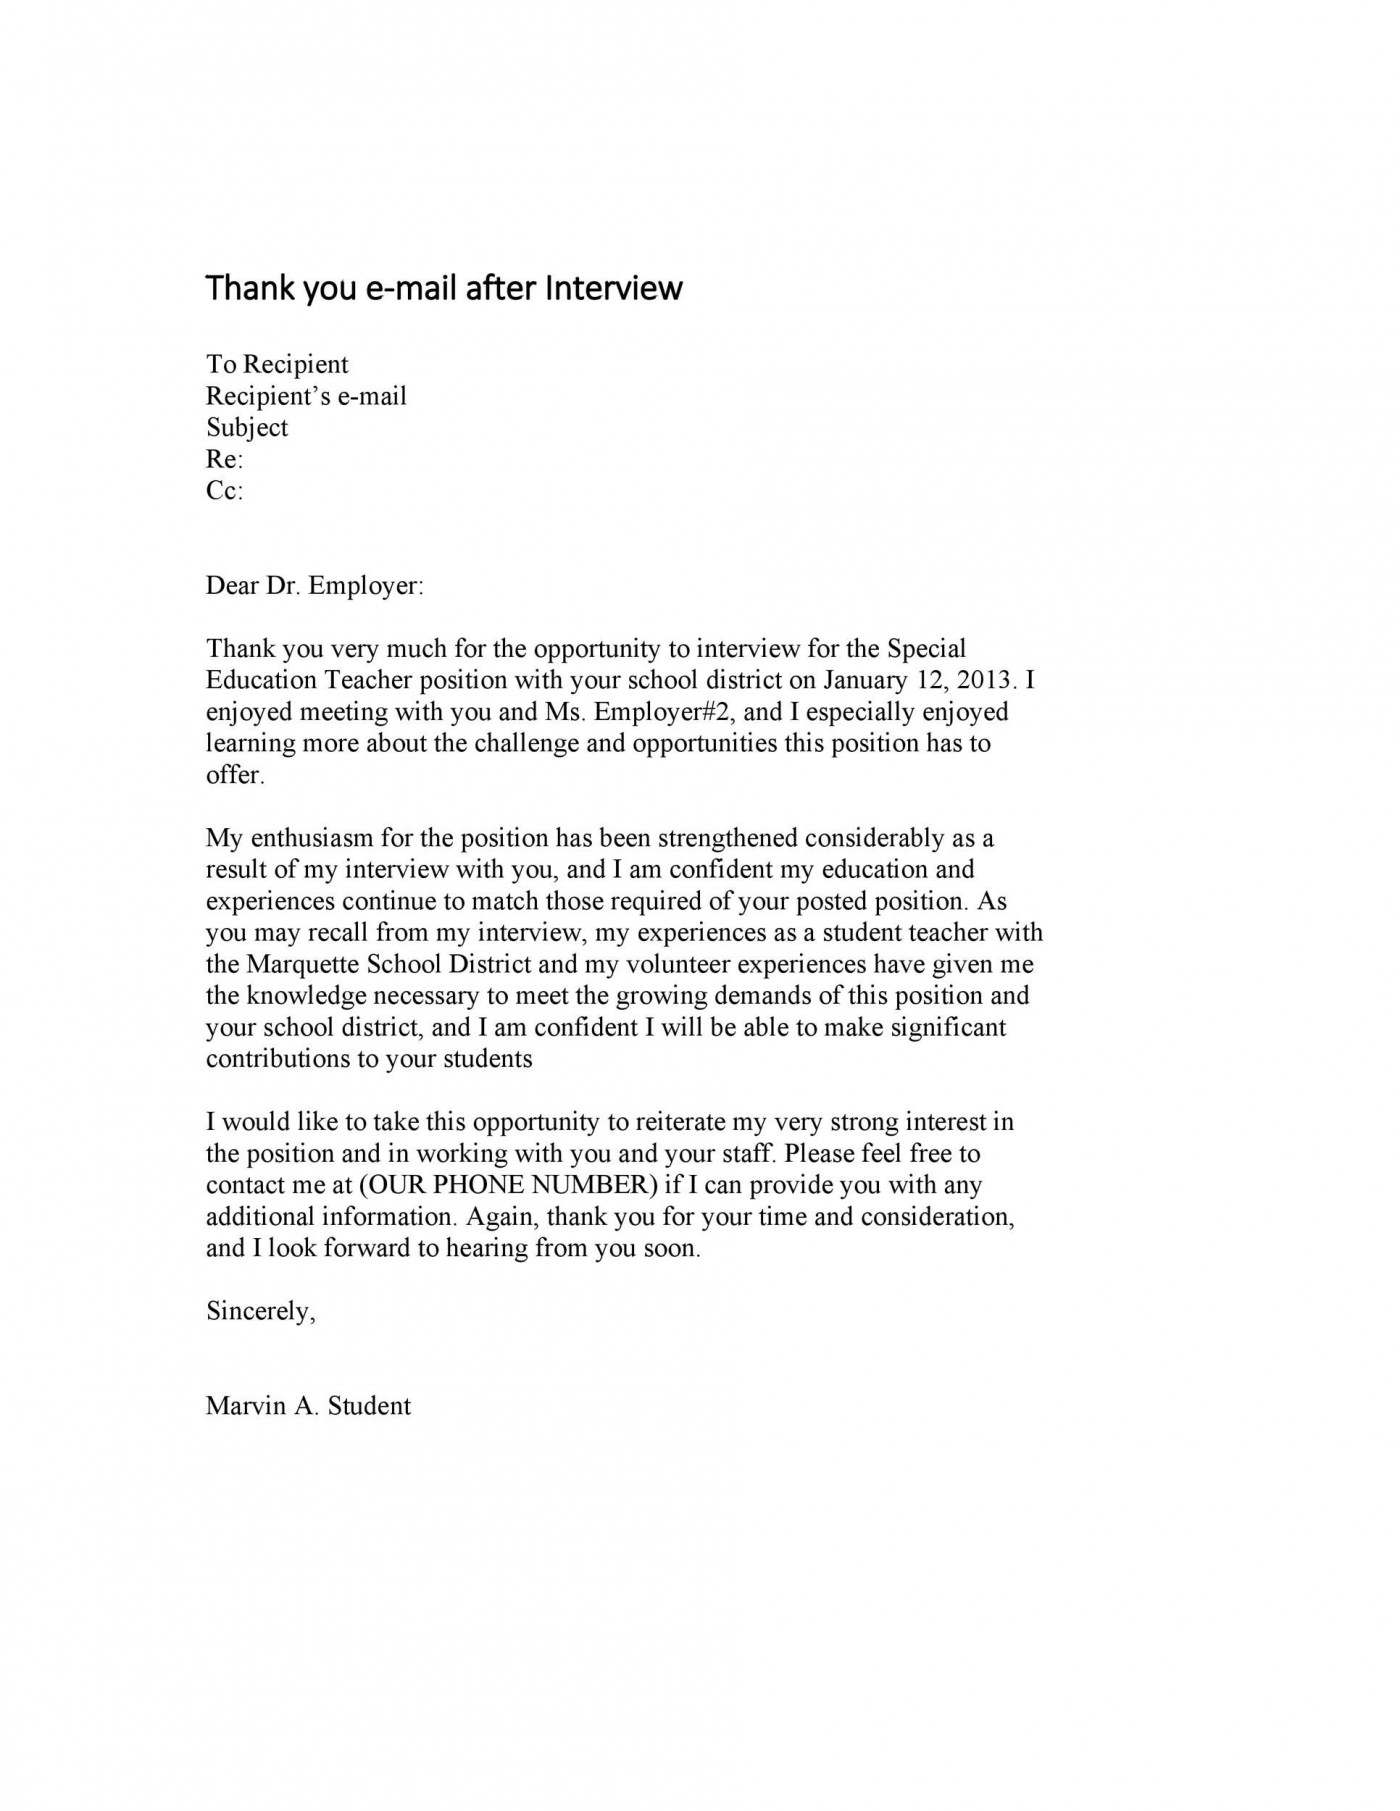 007 Magnificent Post Interview Thank You Note Template Sample  Letter Card Example Medical School1400